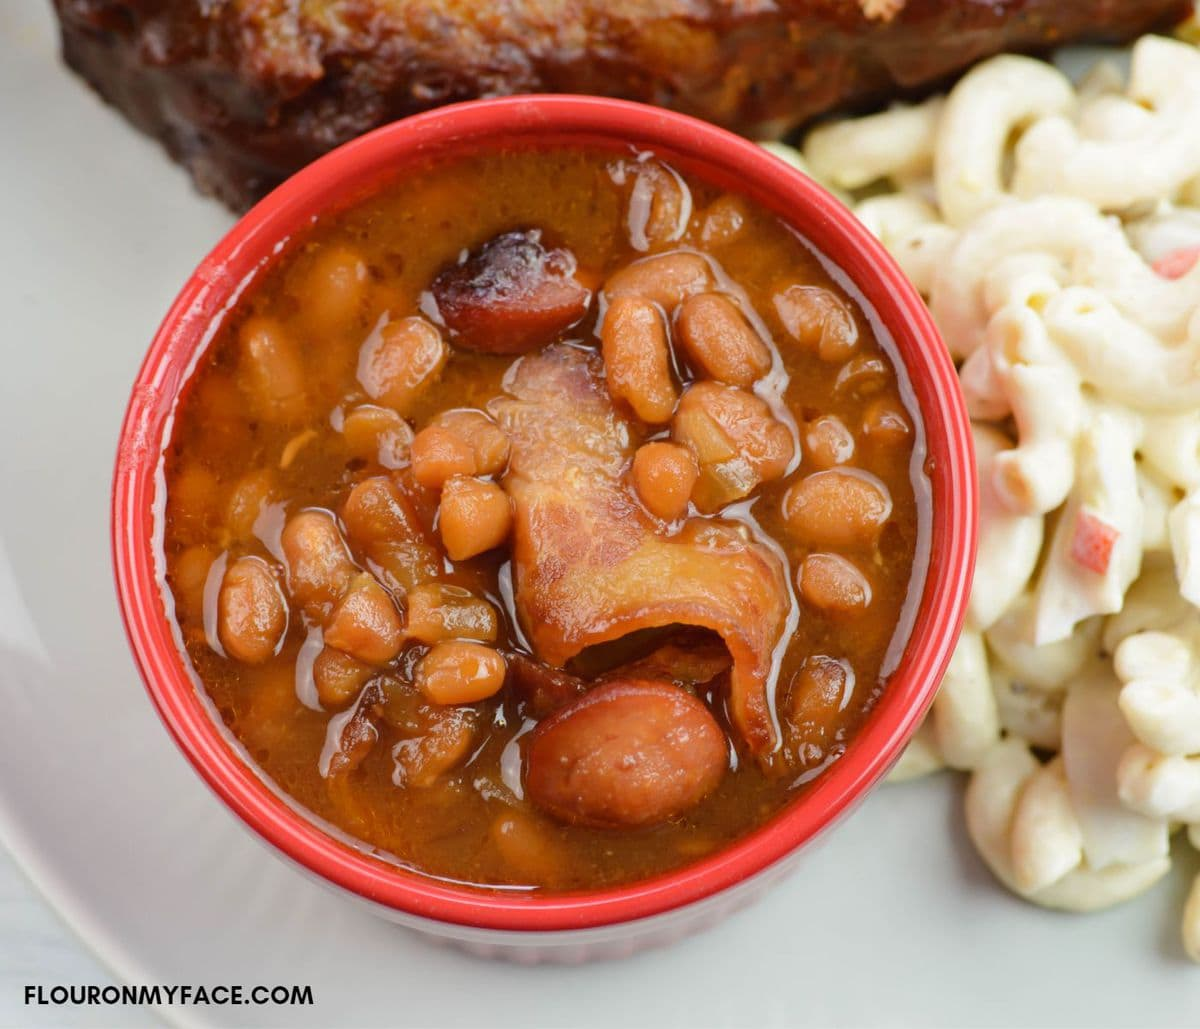 Overhead image of a small red bowl of baked beans.